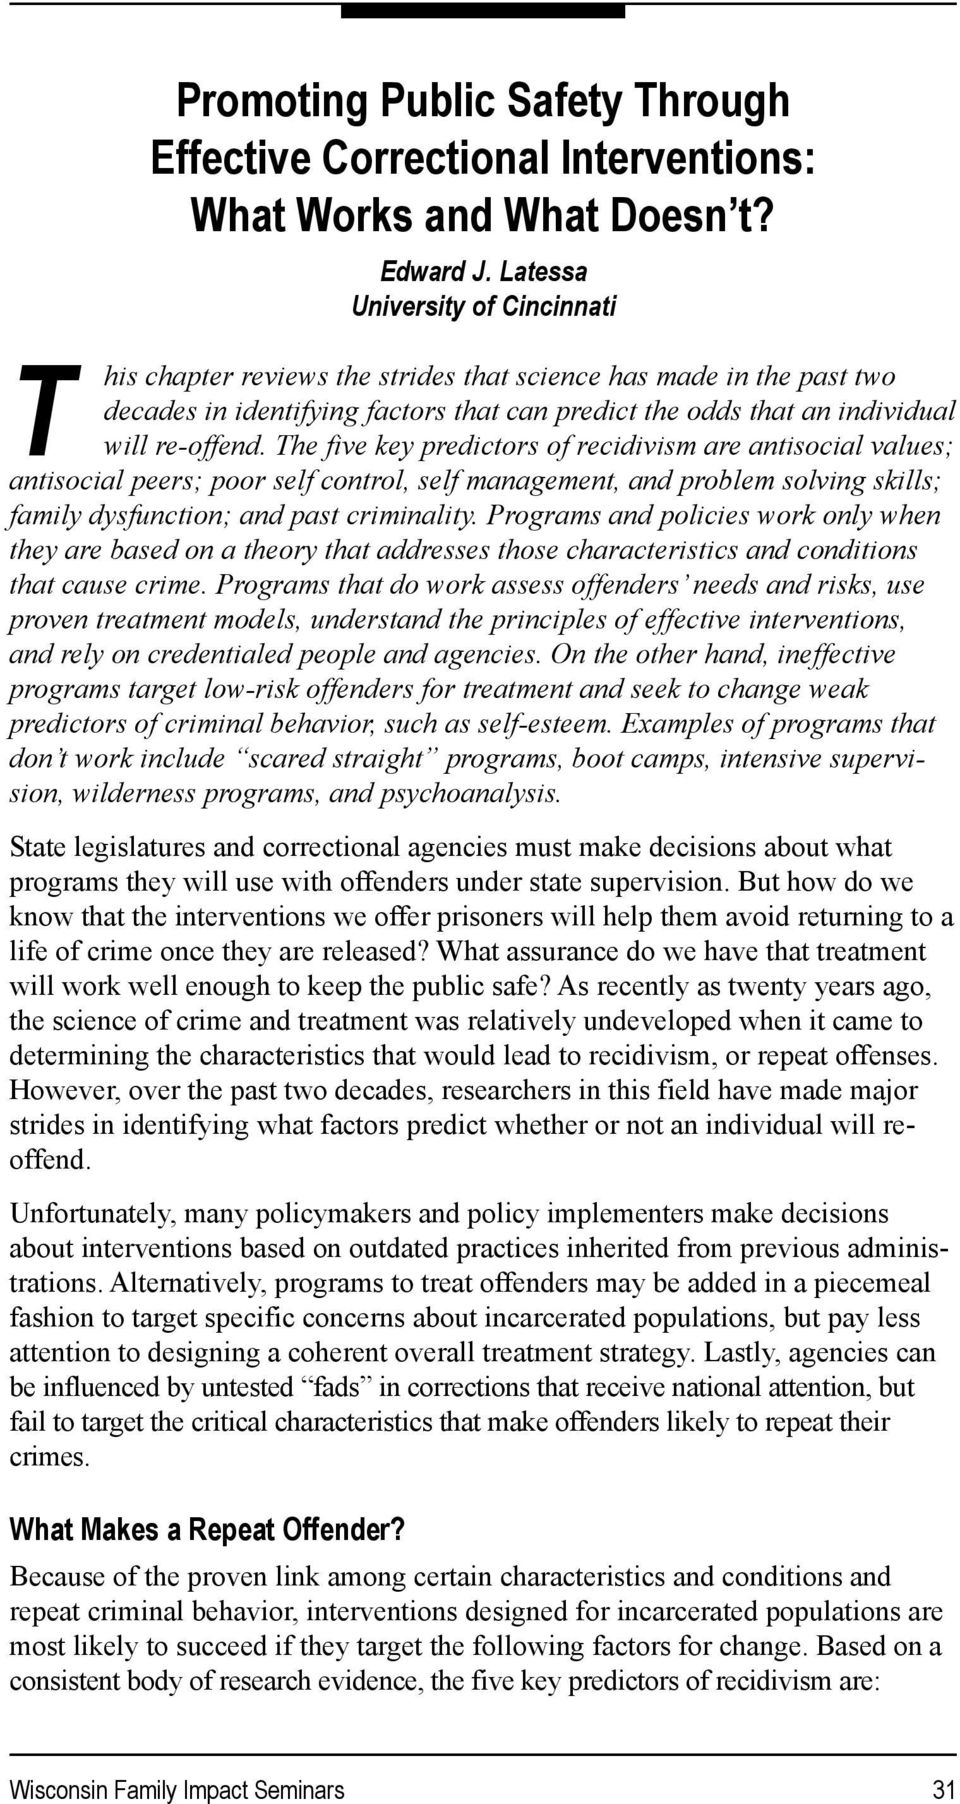 The five key predictors of recidivism are antisocial values; antisocial peers; poor self control, self management, and problem solving skills; family dysfunction; and past criminality.